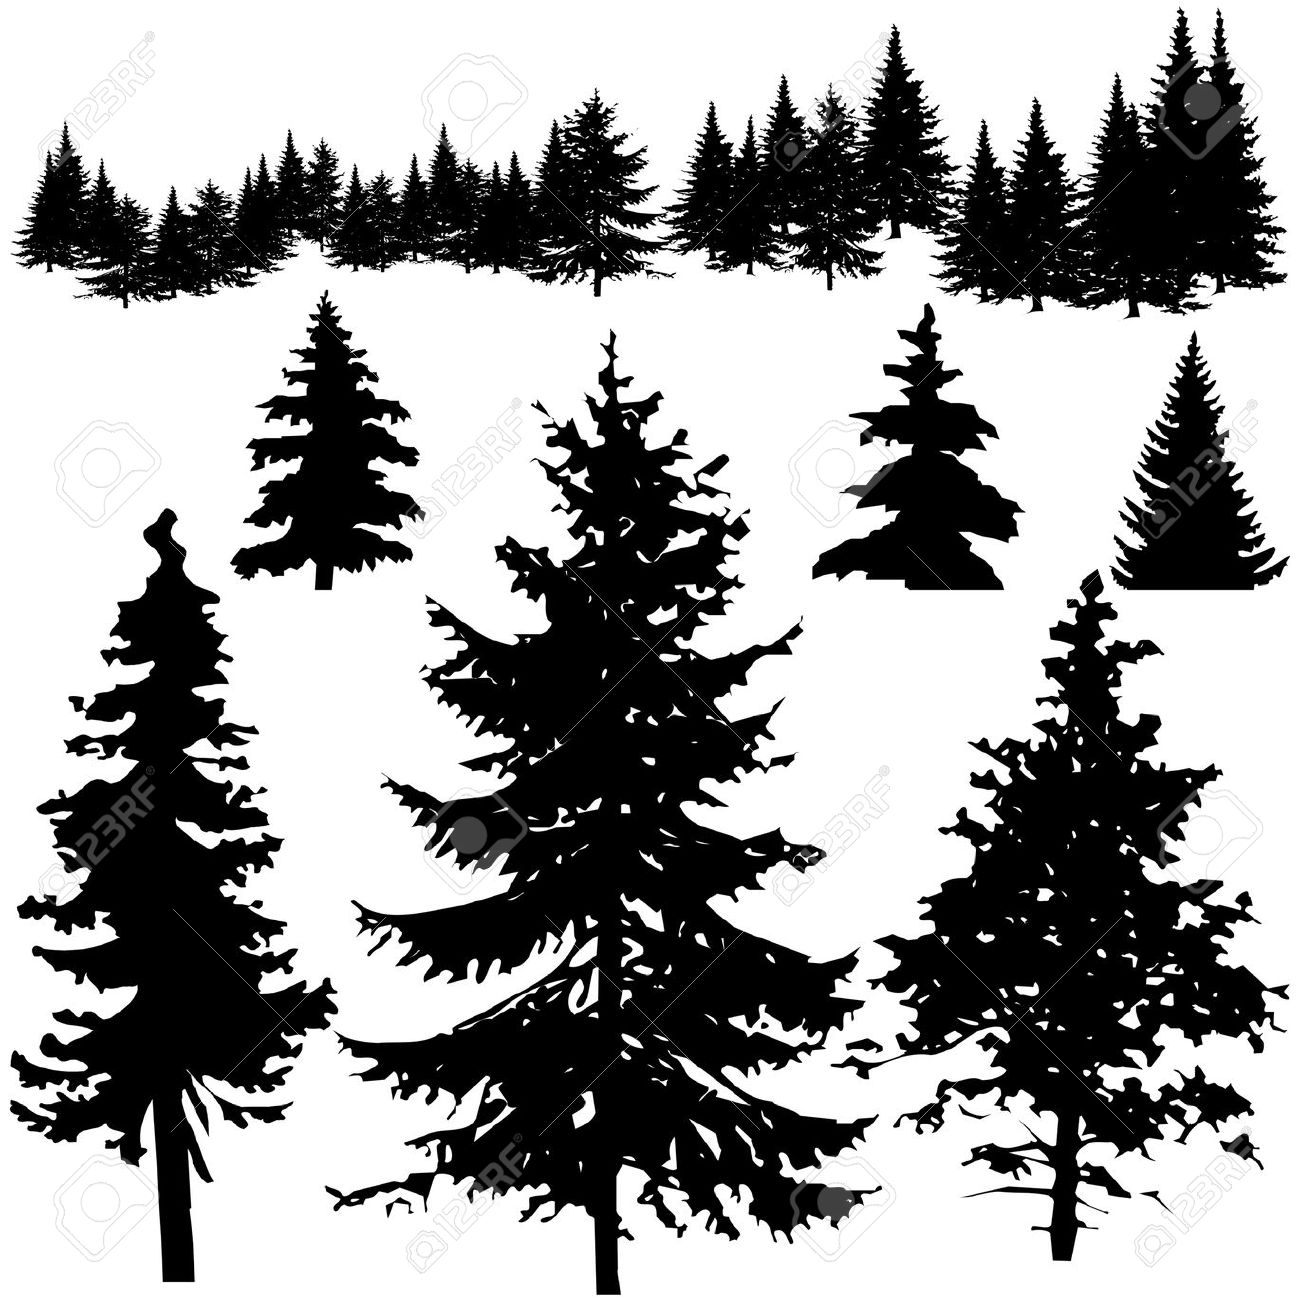 Silhouette tree clipart.